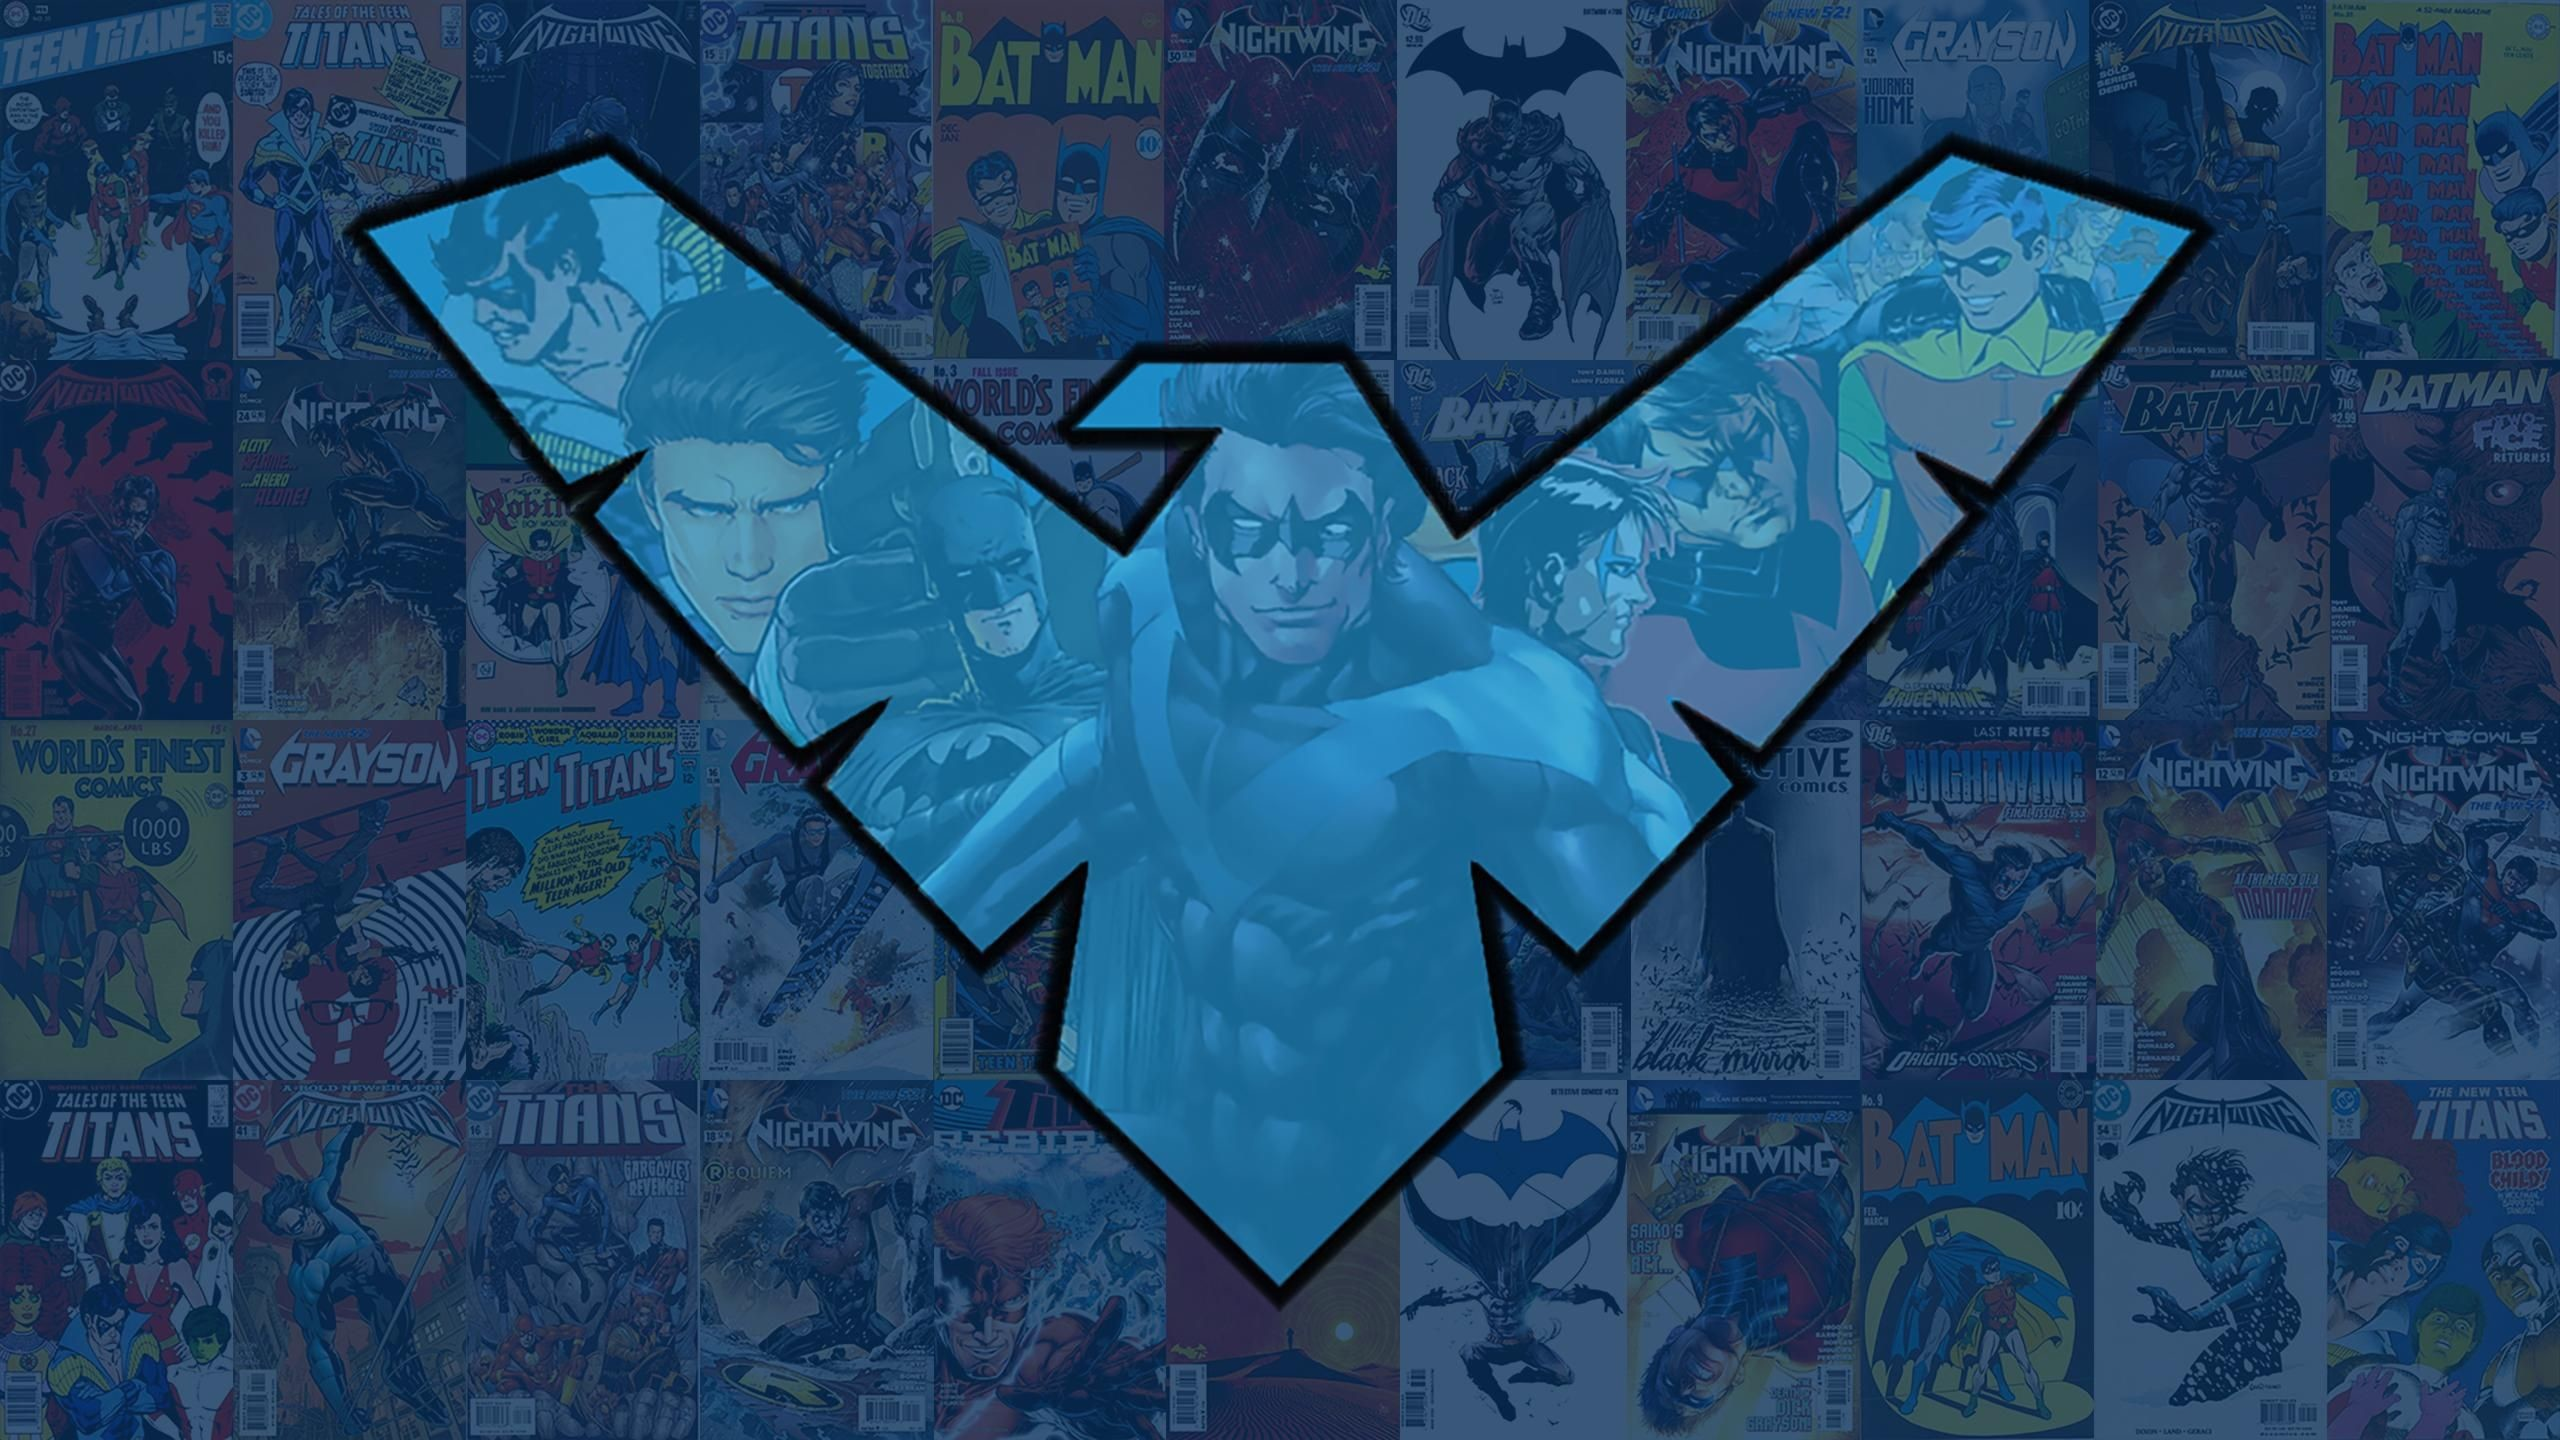 Res: 2560x1440, Wallpaper Images Hd · Batman Nightwing Android Central